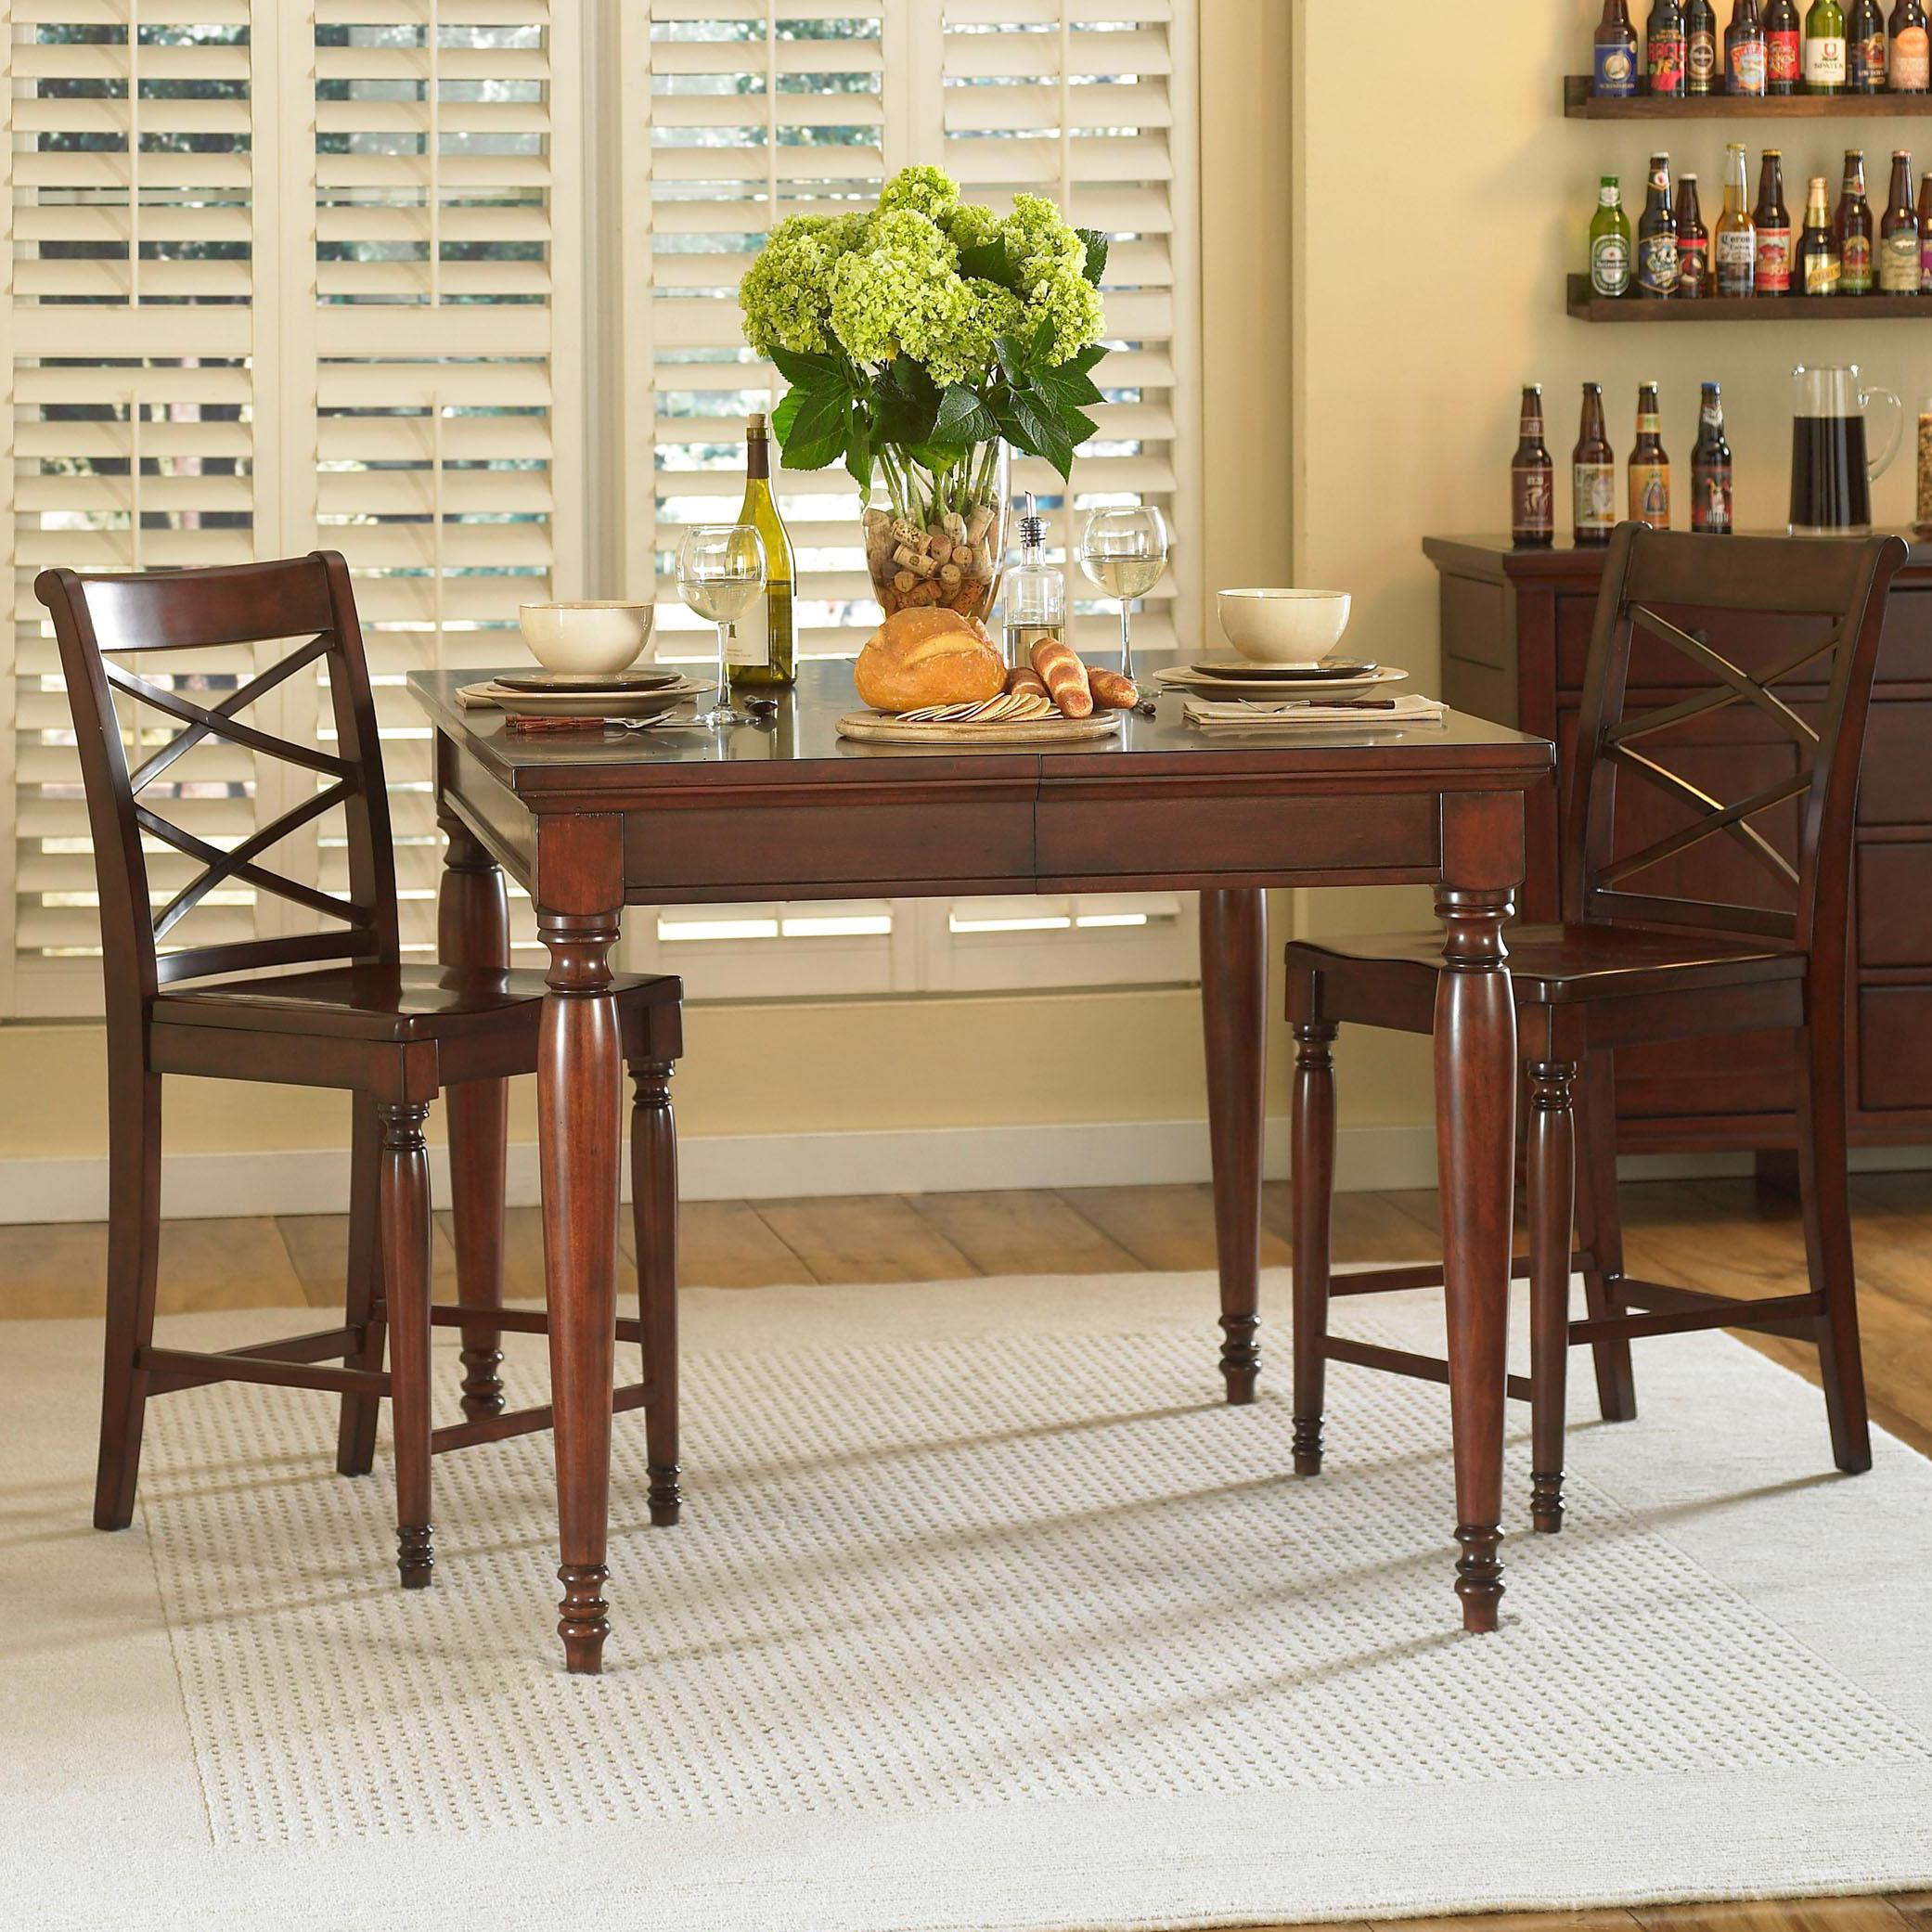 Aspenhome cambridge 3 piece counter height table chair for Hudsons furniture